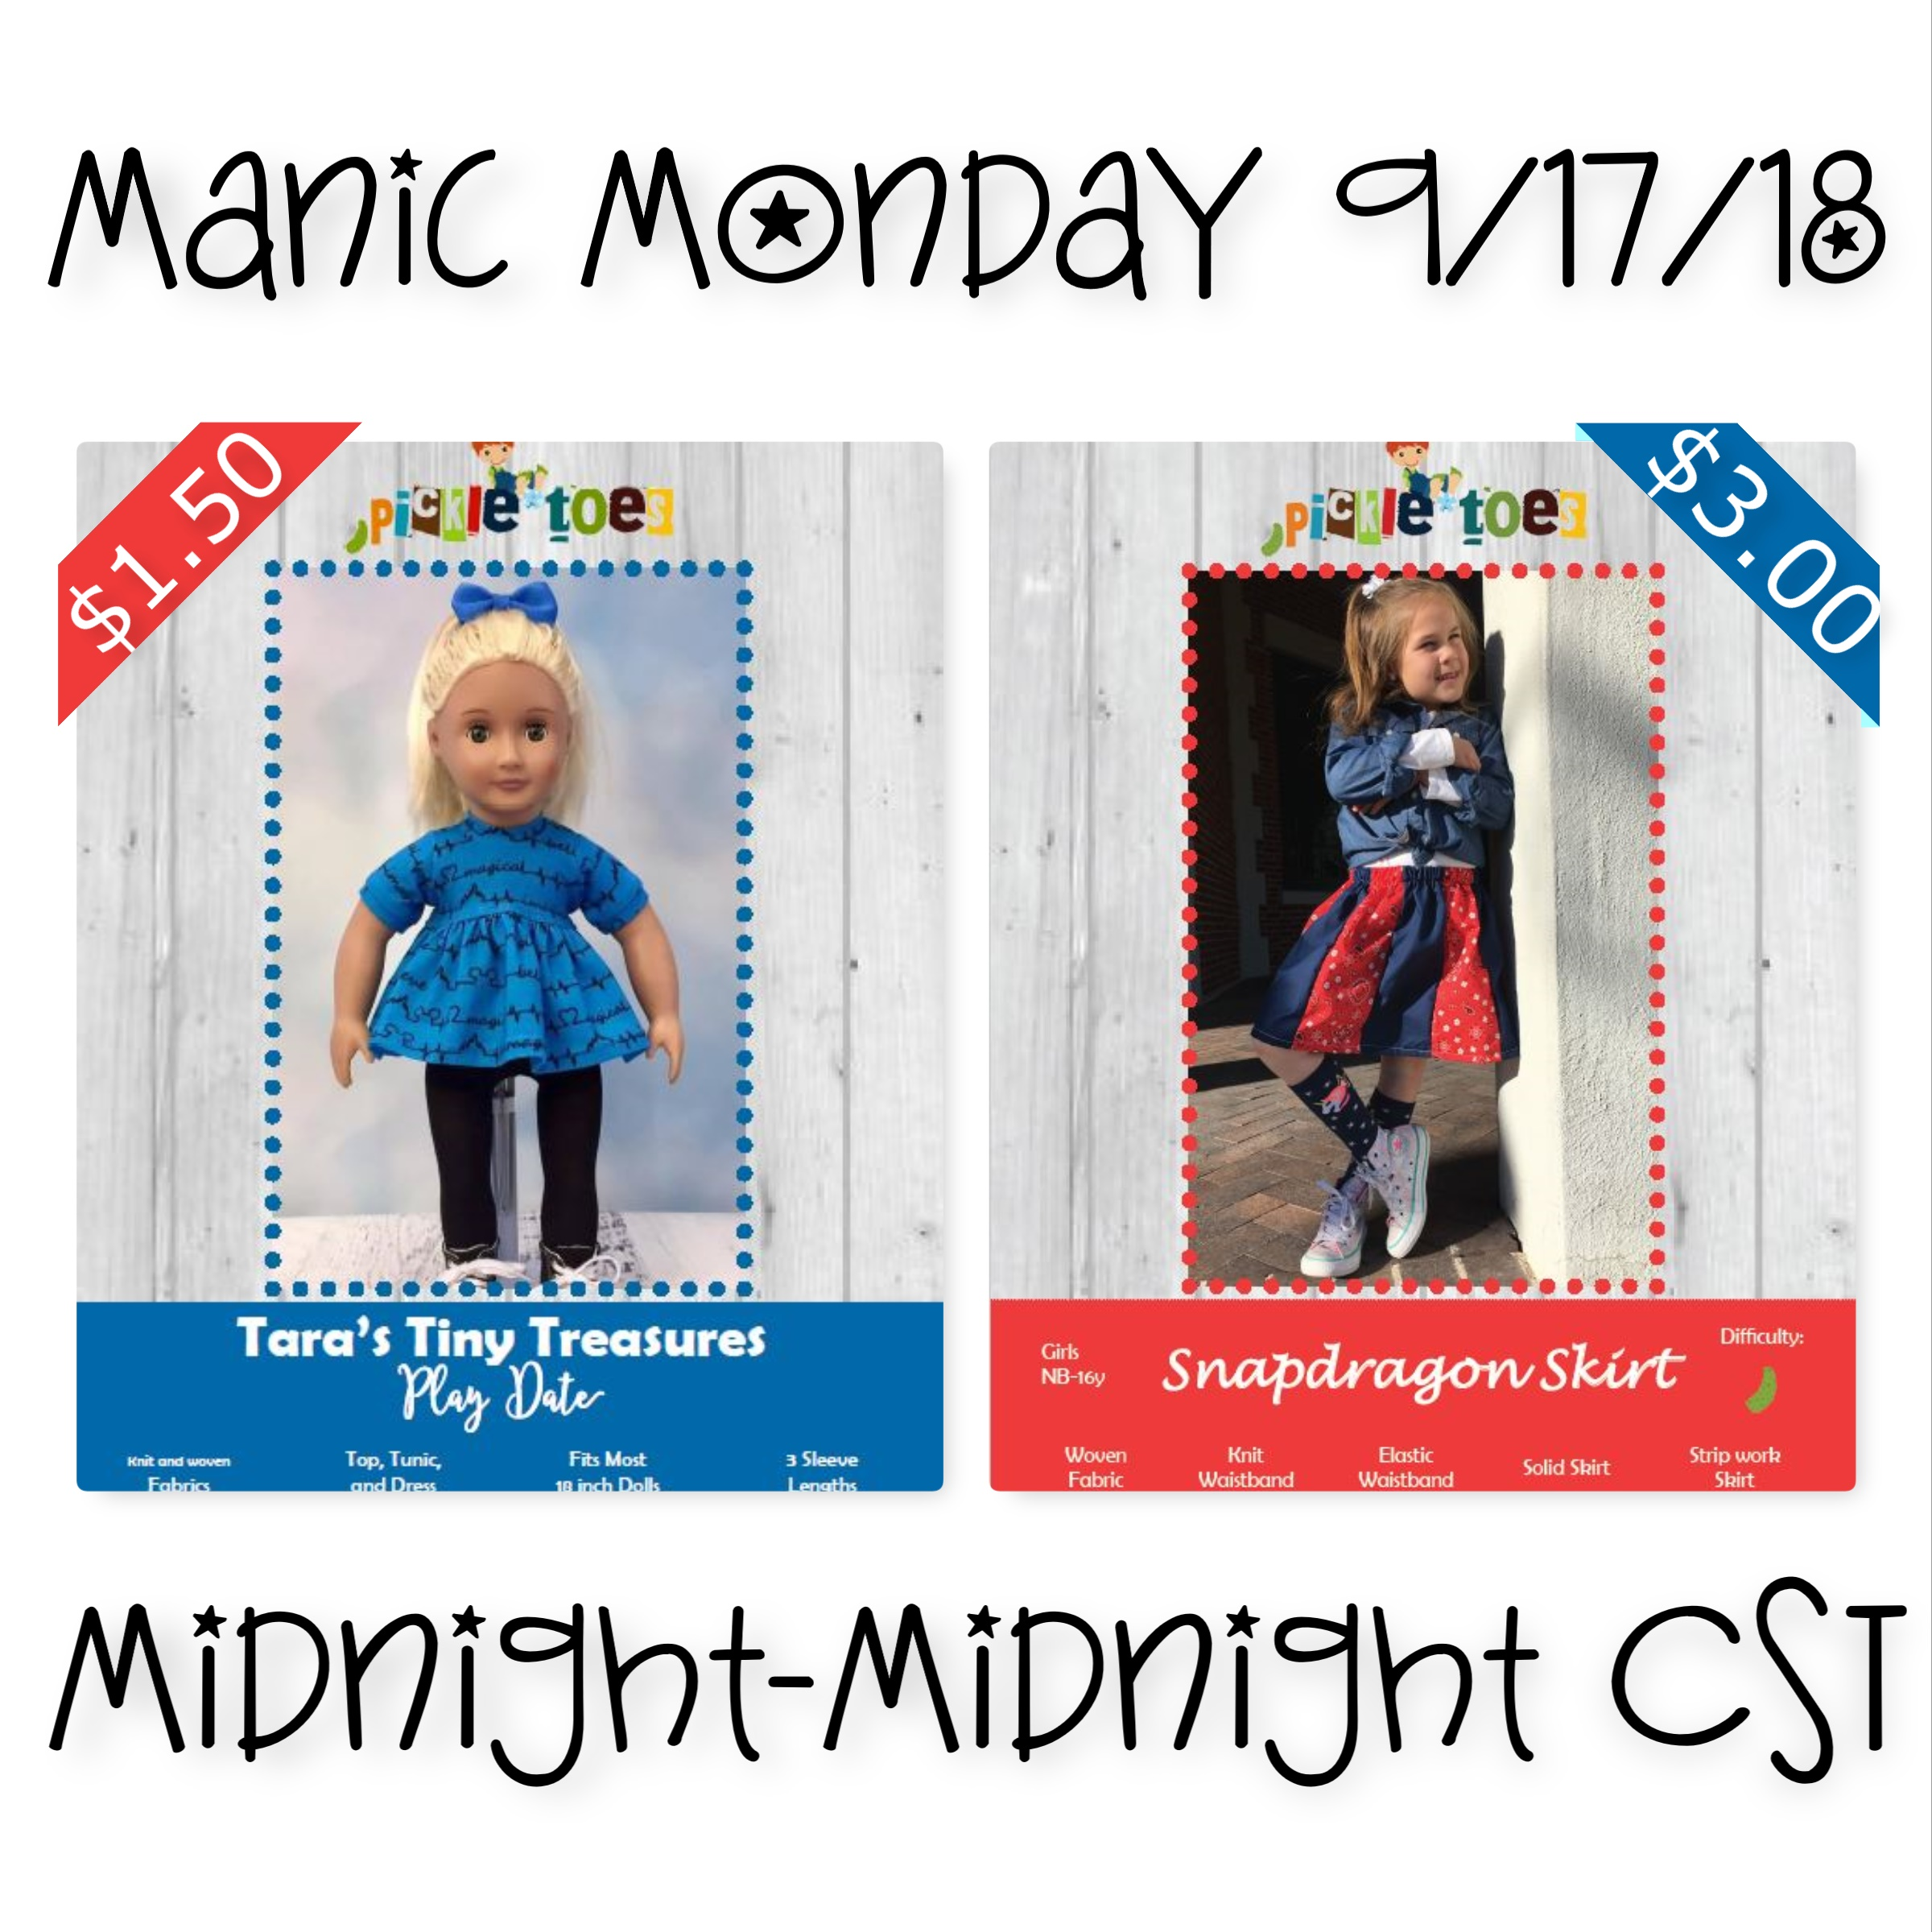 Manic Monday Sewing Pattern Deals 9_17